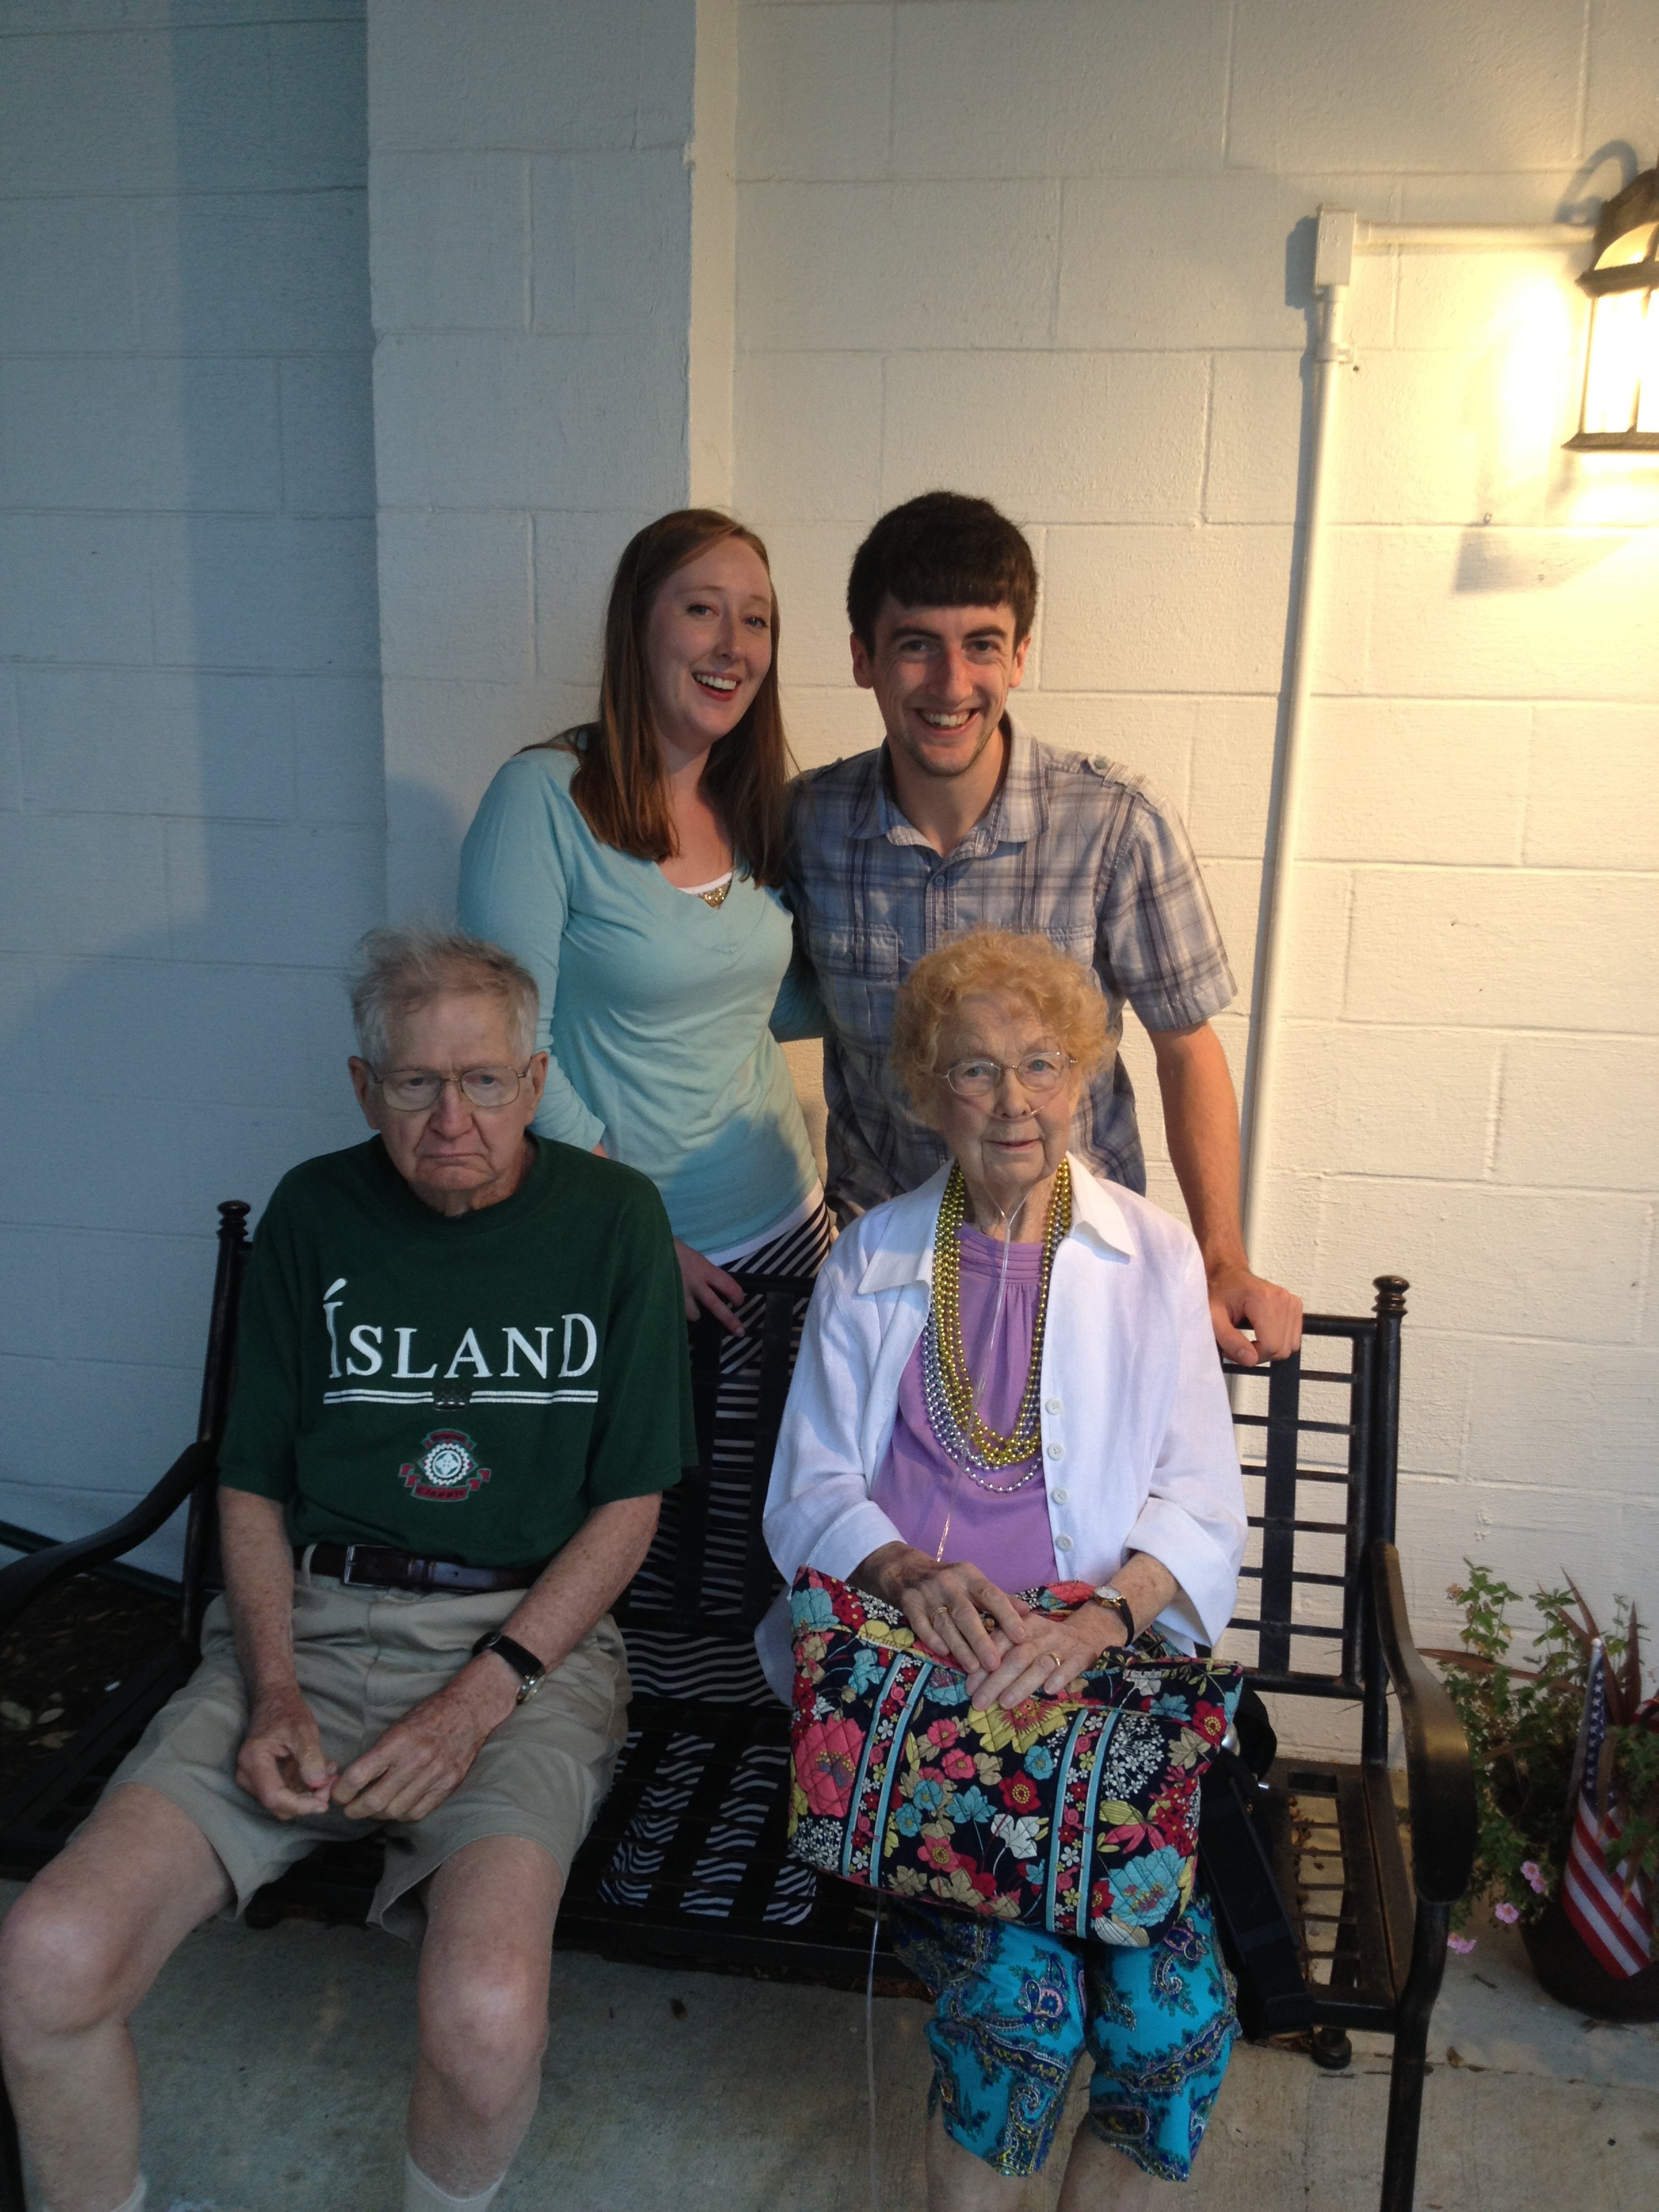 Billy, Nana, Laurel, and myself Emerald Isle, NC June 2013